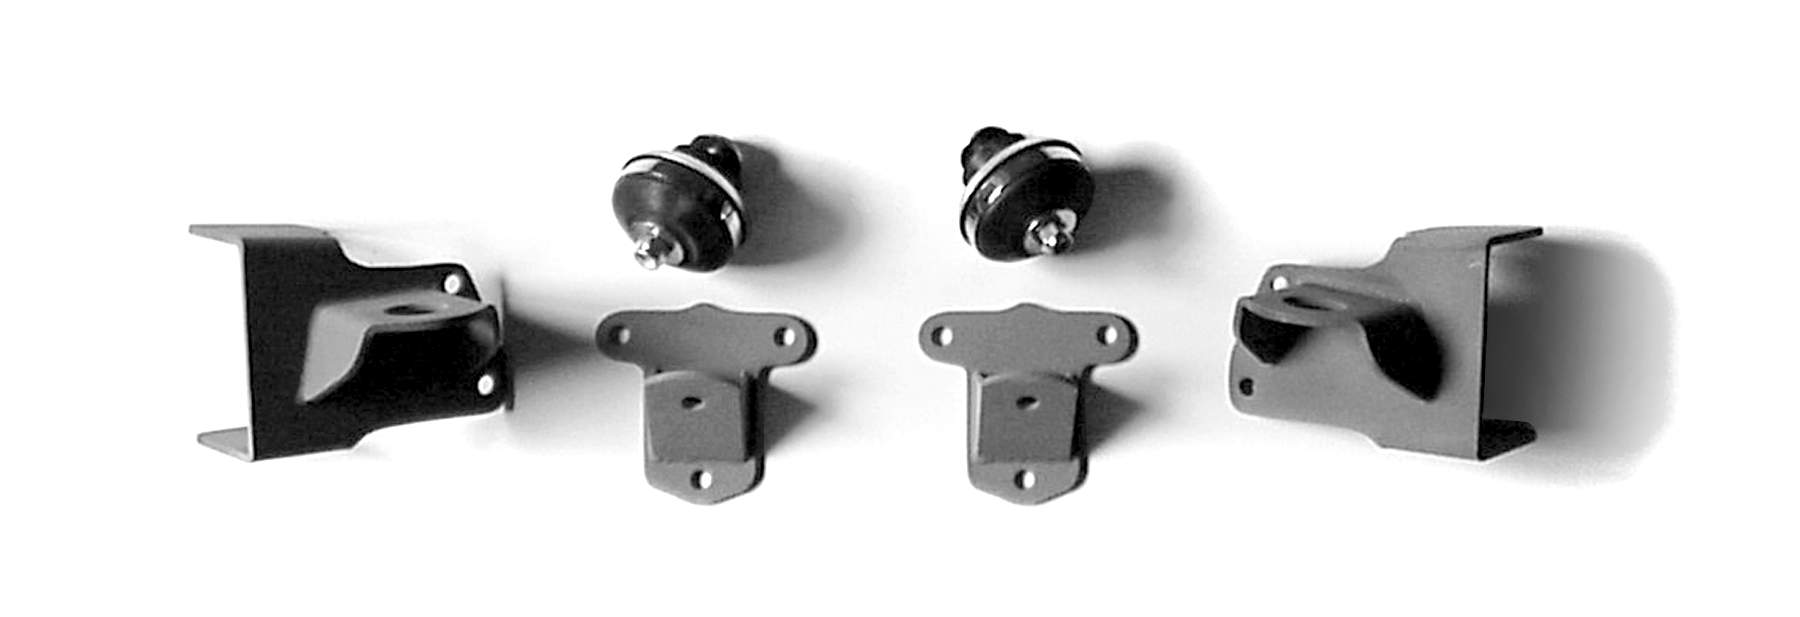 1940 Chevy Small Block Chevy Engine Mounting Kit, Solid Axle